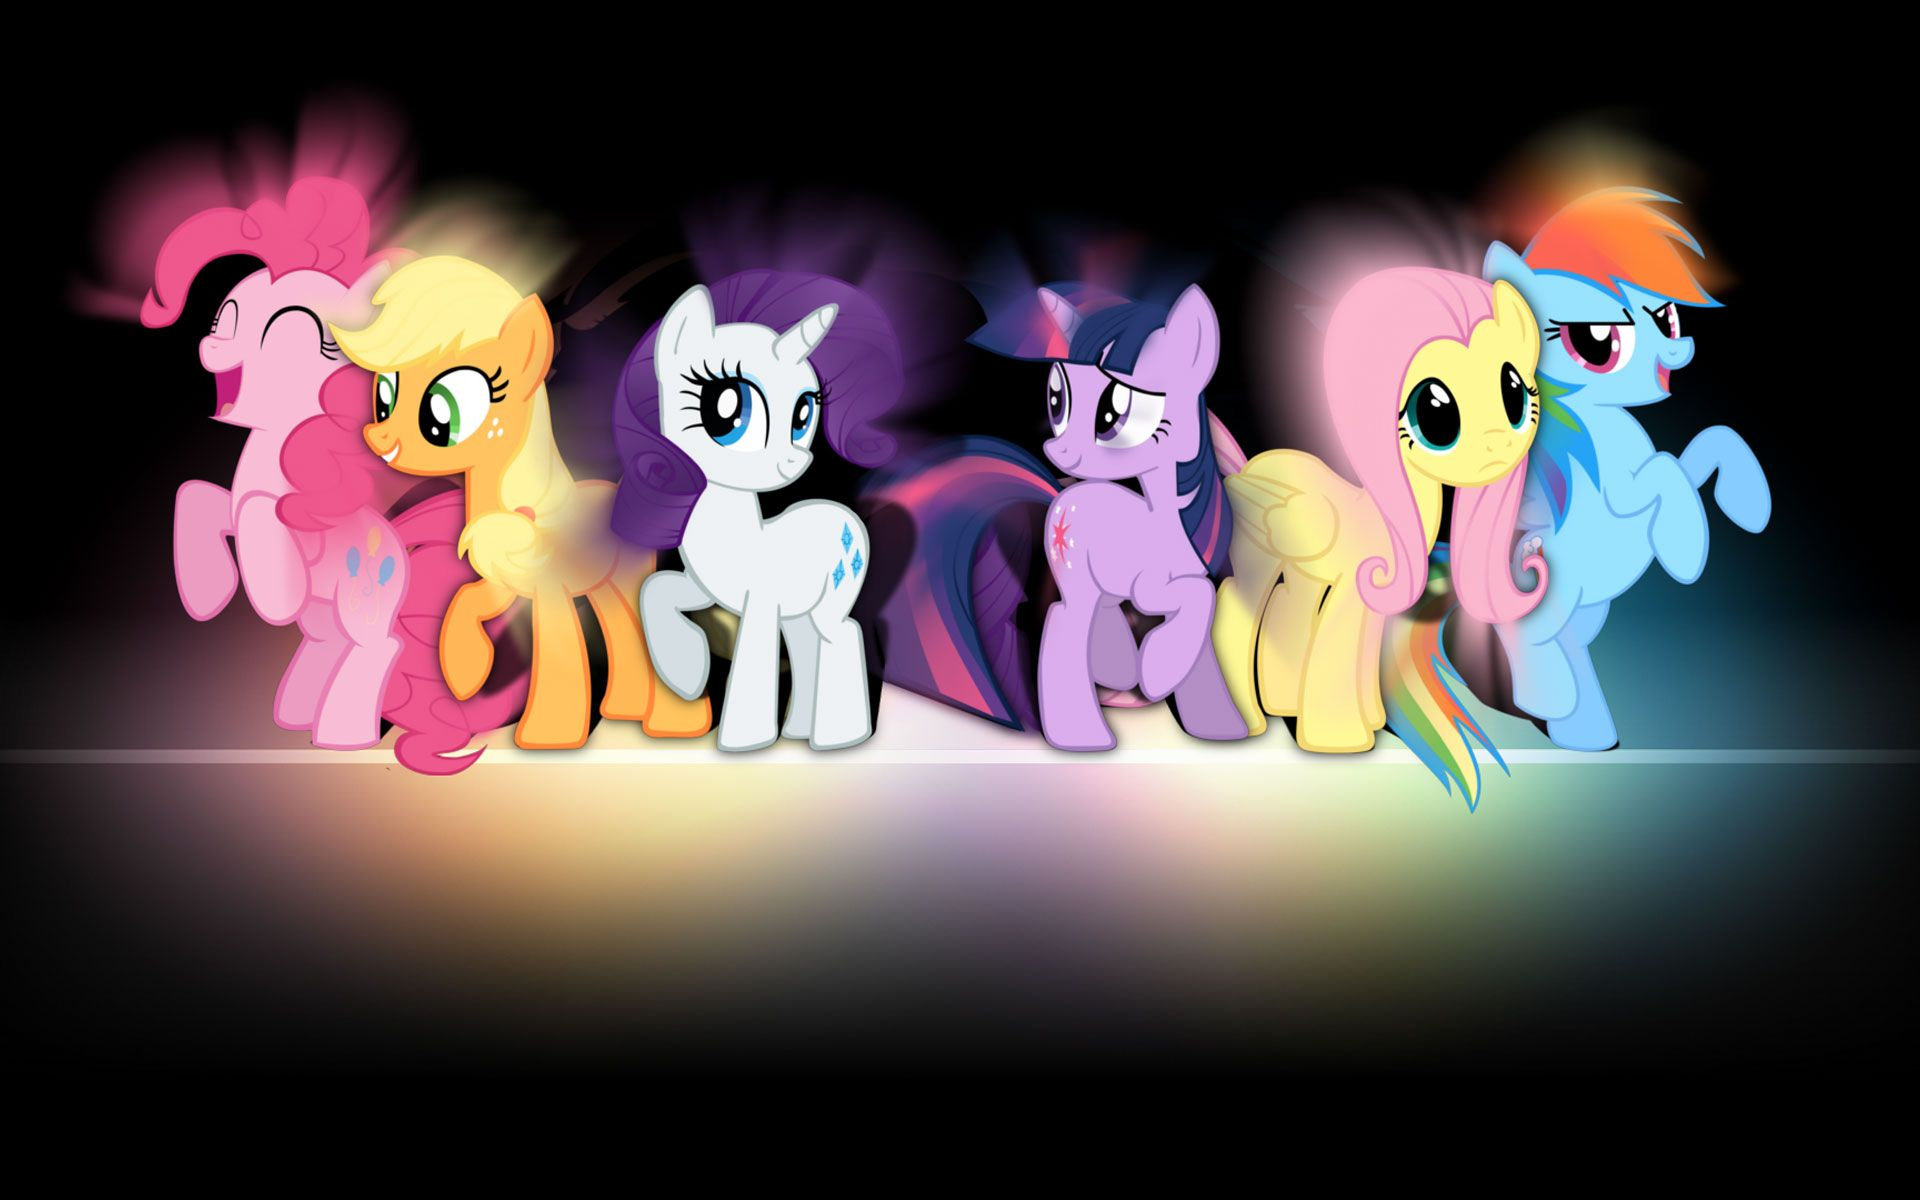 Mlp Cute Cell Phone Wallpapers Top Free Mlp Cute Cell Phone